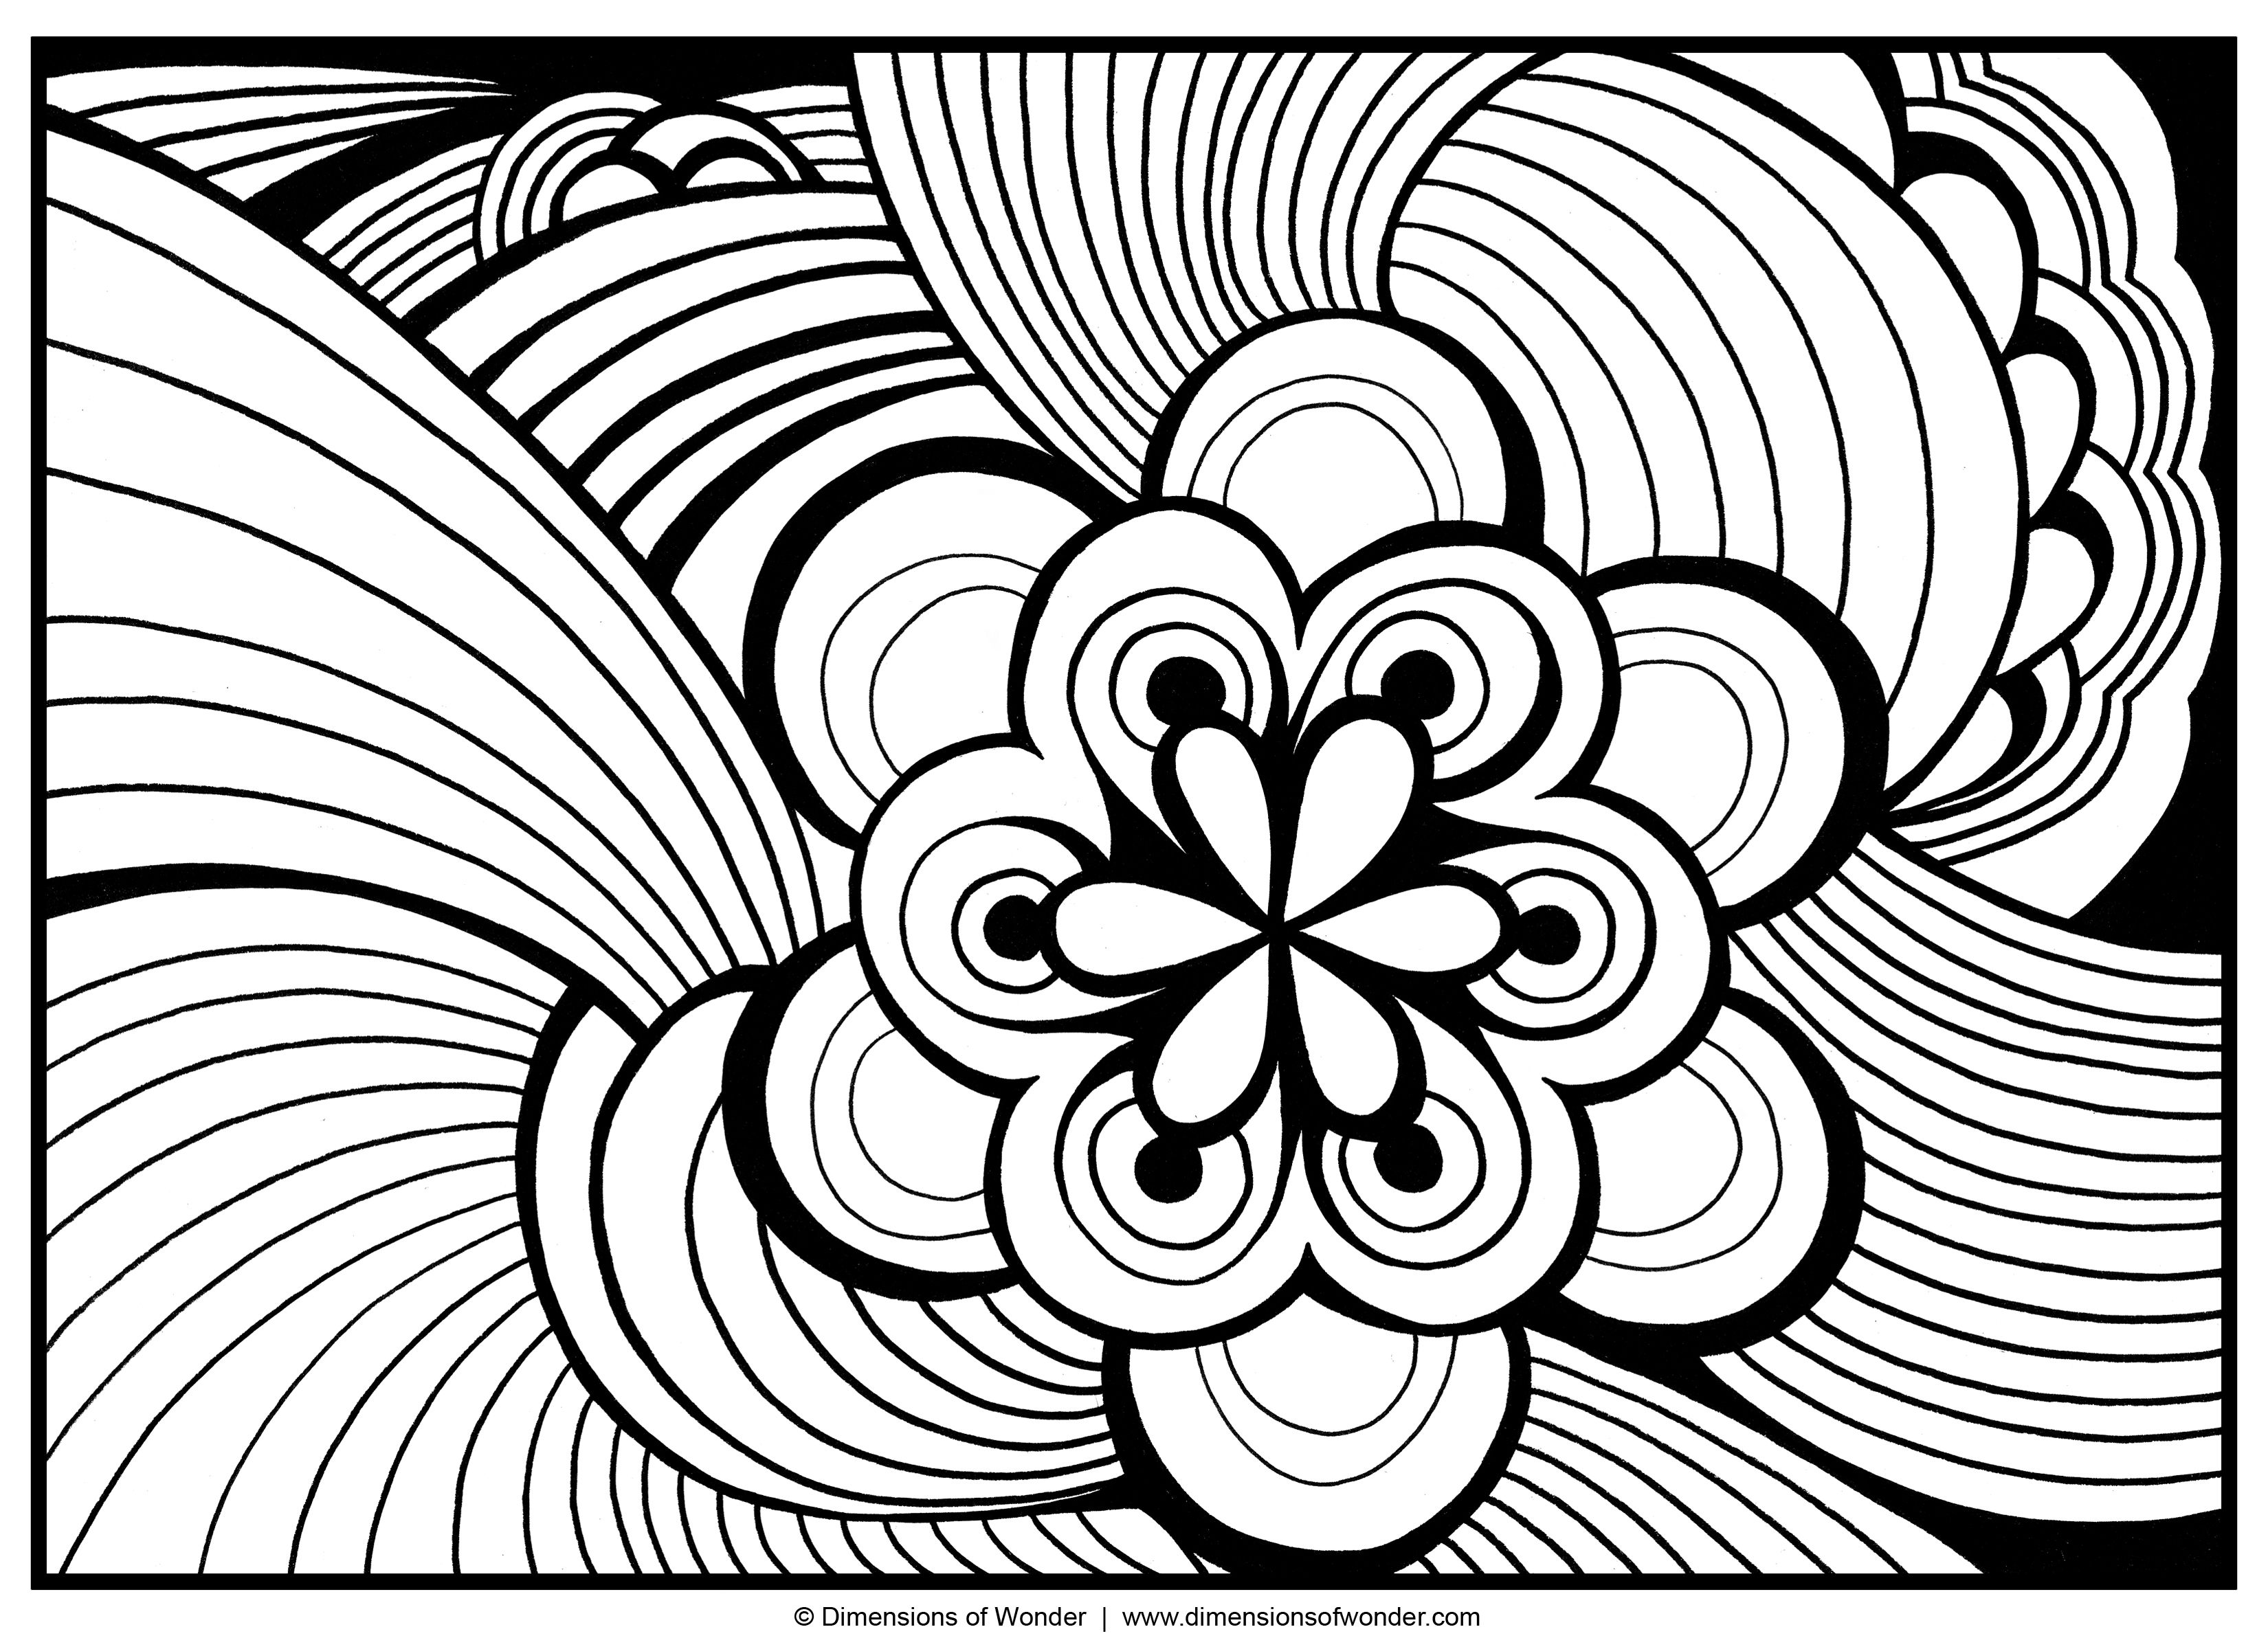 Abstract Coloring Pages Free Large Images Adult And Children S